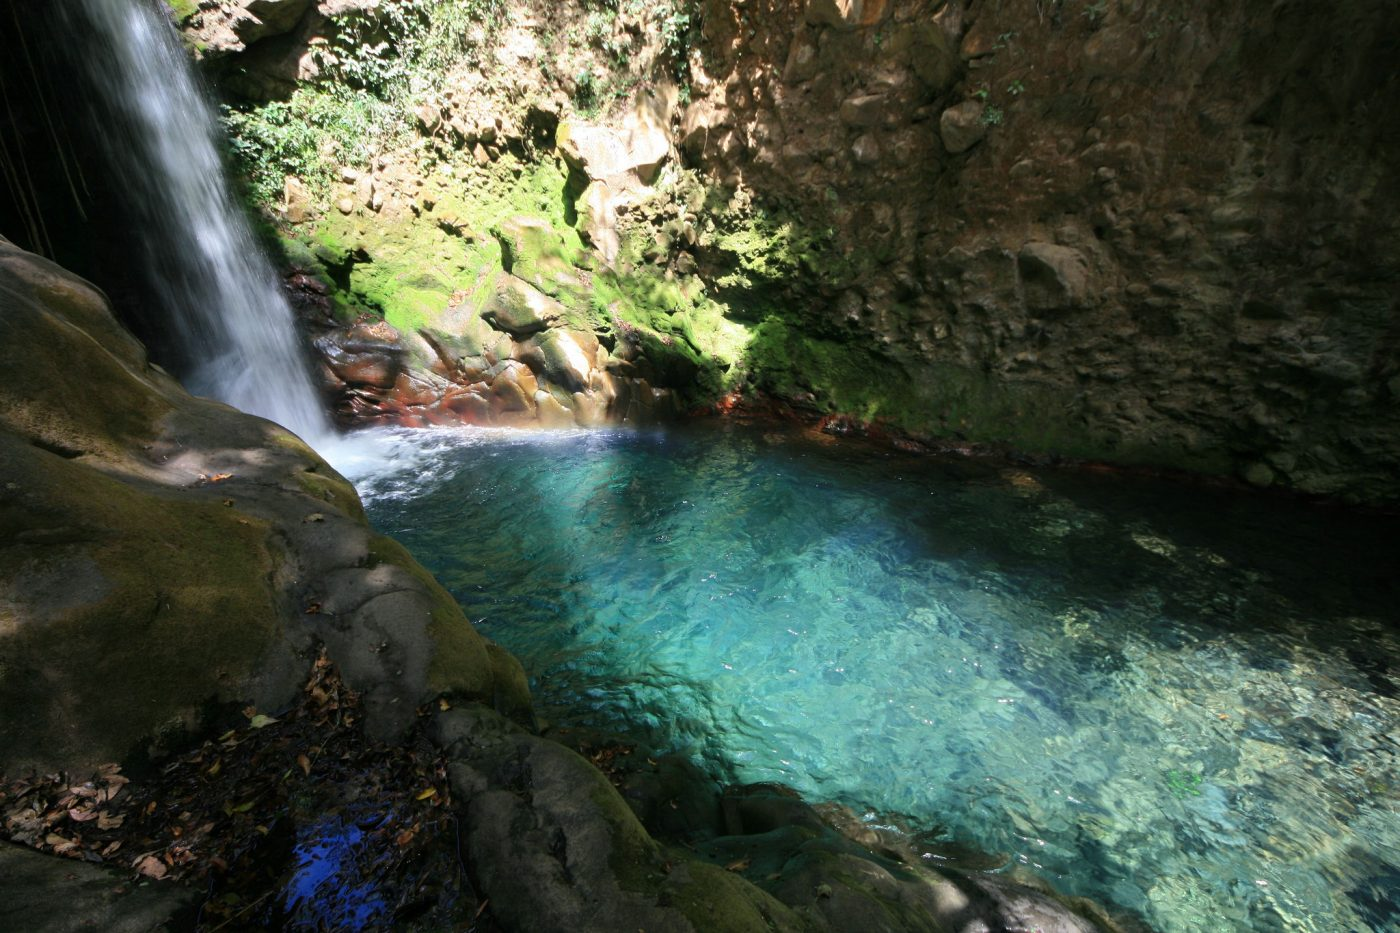 Swimming hole in Rincon de la Vieja National Park, Costa Rica.